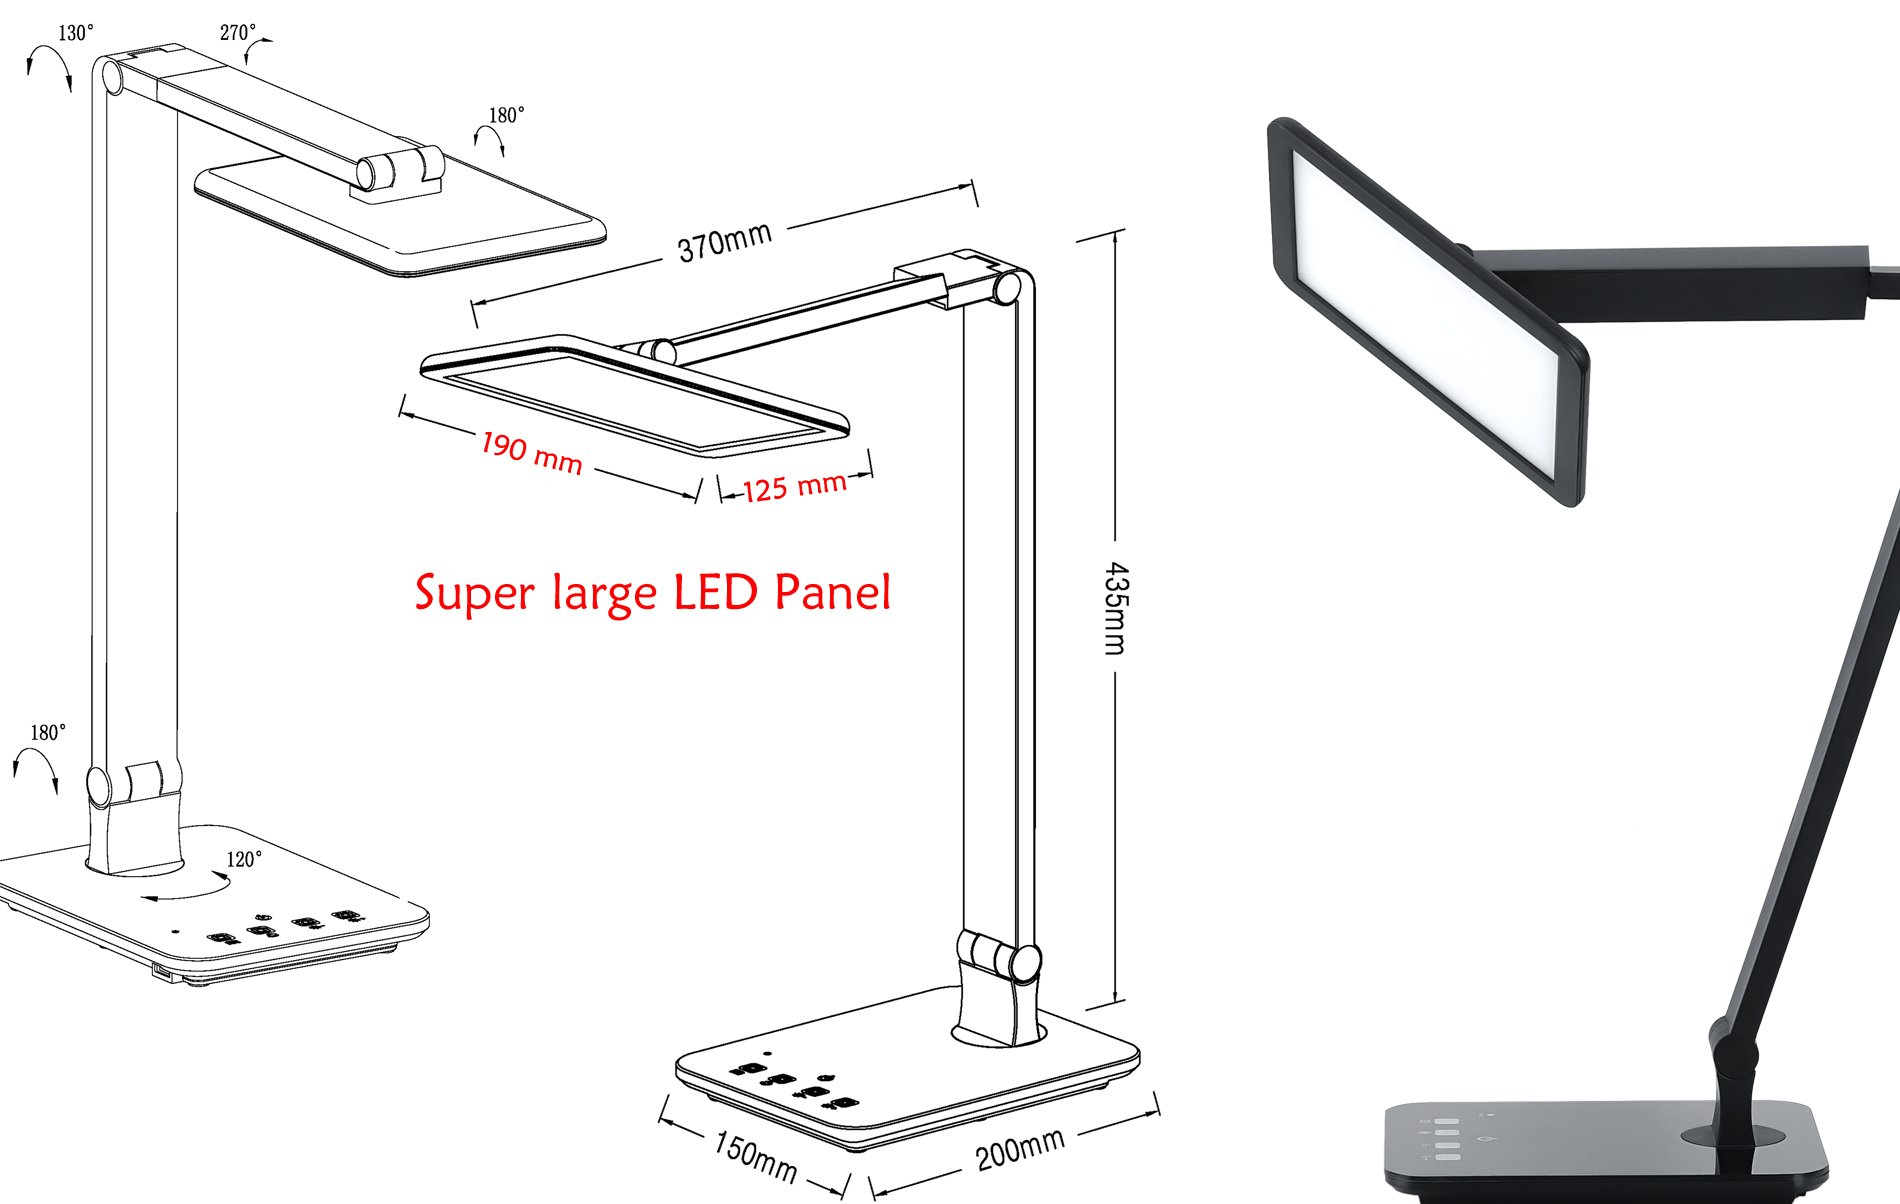 LED Desktop Lamp Saicoo Desk lamp with Large LED Panel, Seamless Dimming-Control of Brightness and Color Temperature, an USB Charging Port by saicoo (Image #5)